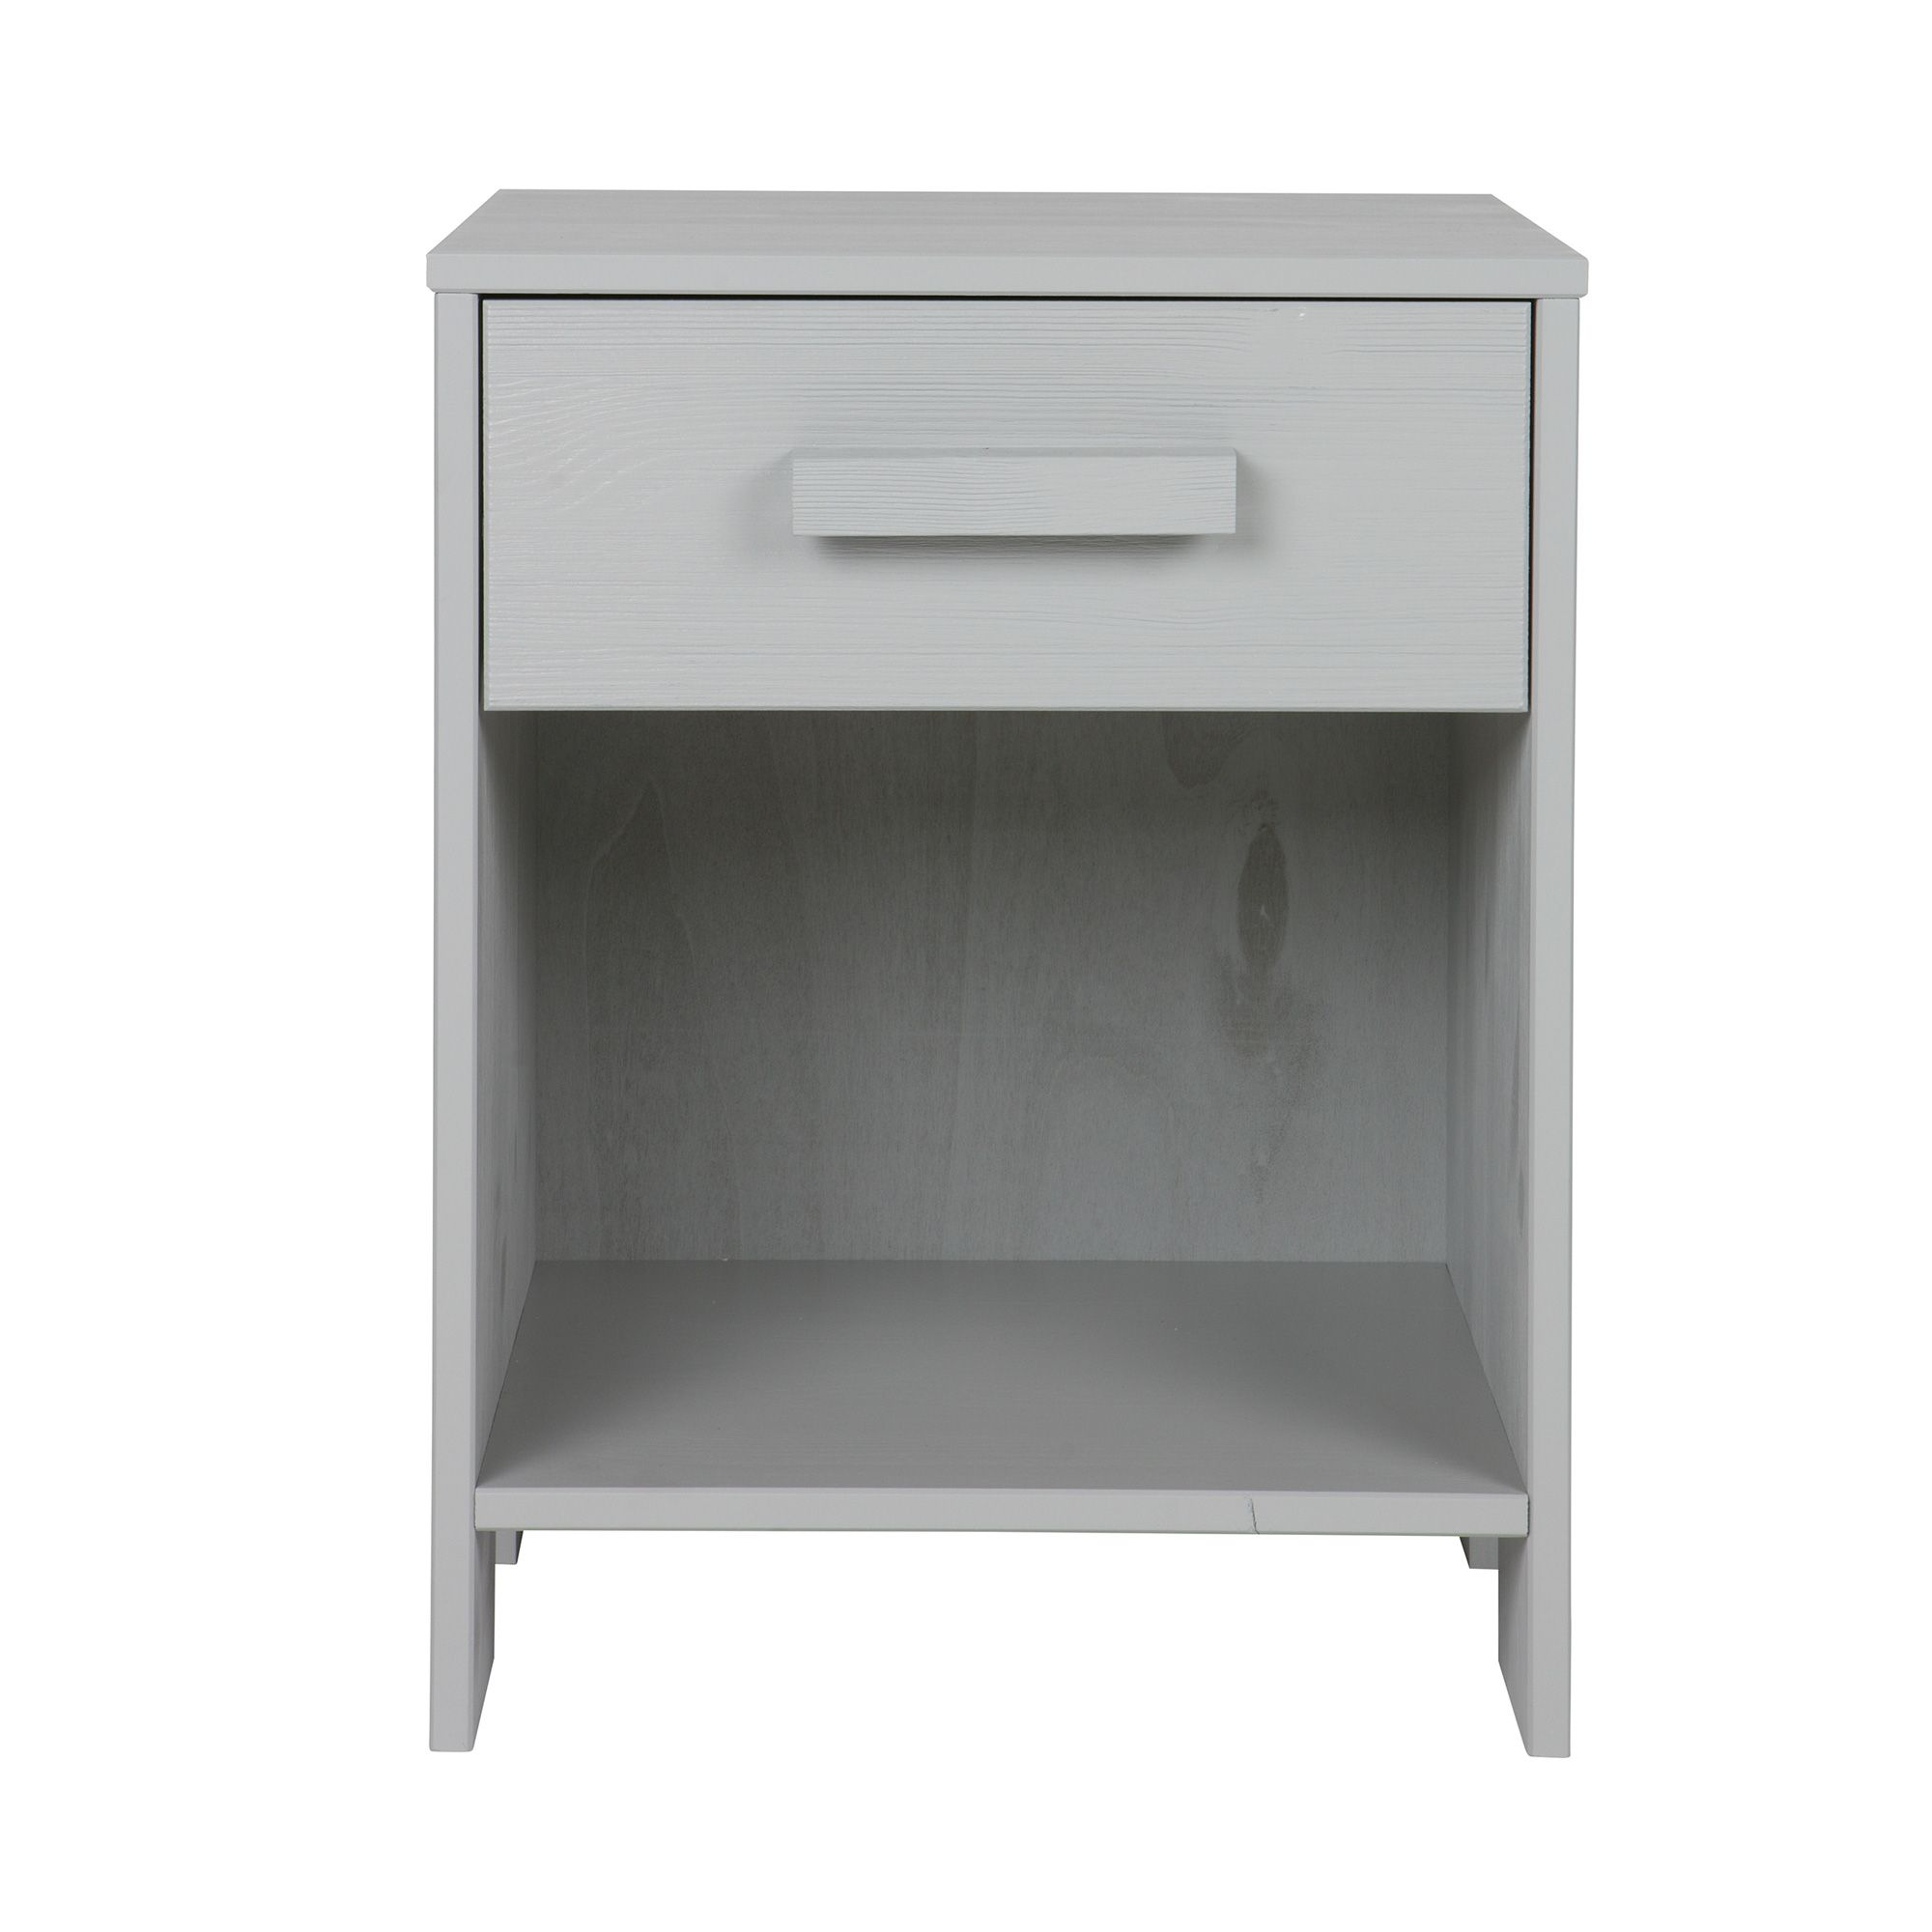 Woood Woood Dennis 1 Drawer Bedside Locker Concrete Grey Meubles - Woood Bed Dennis